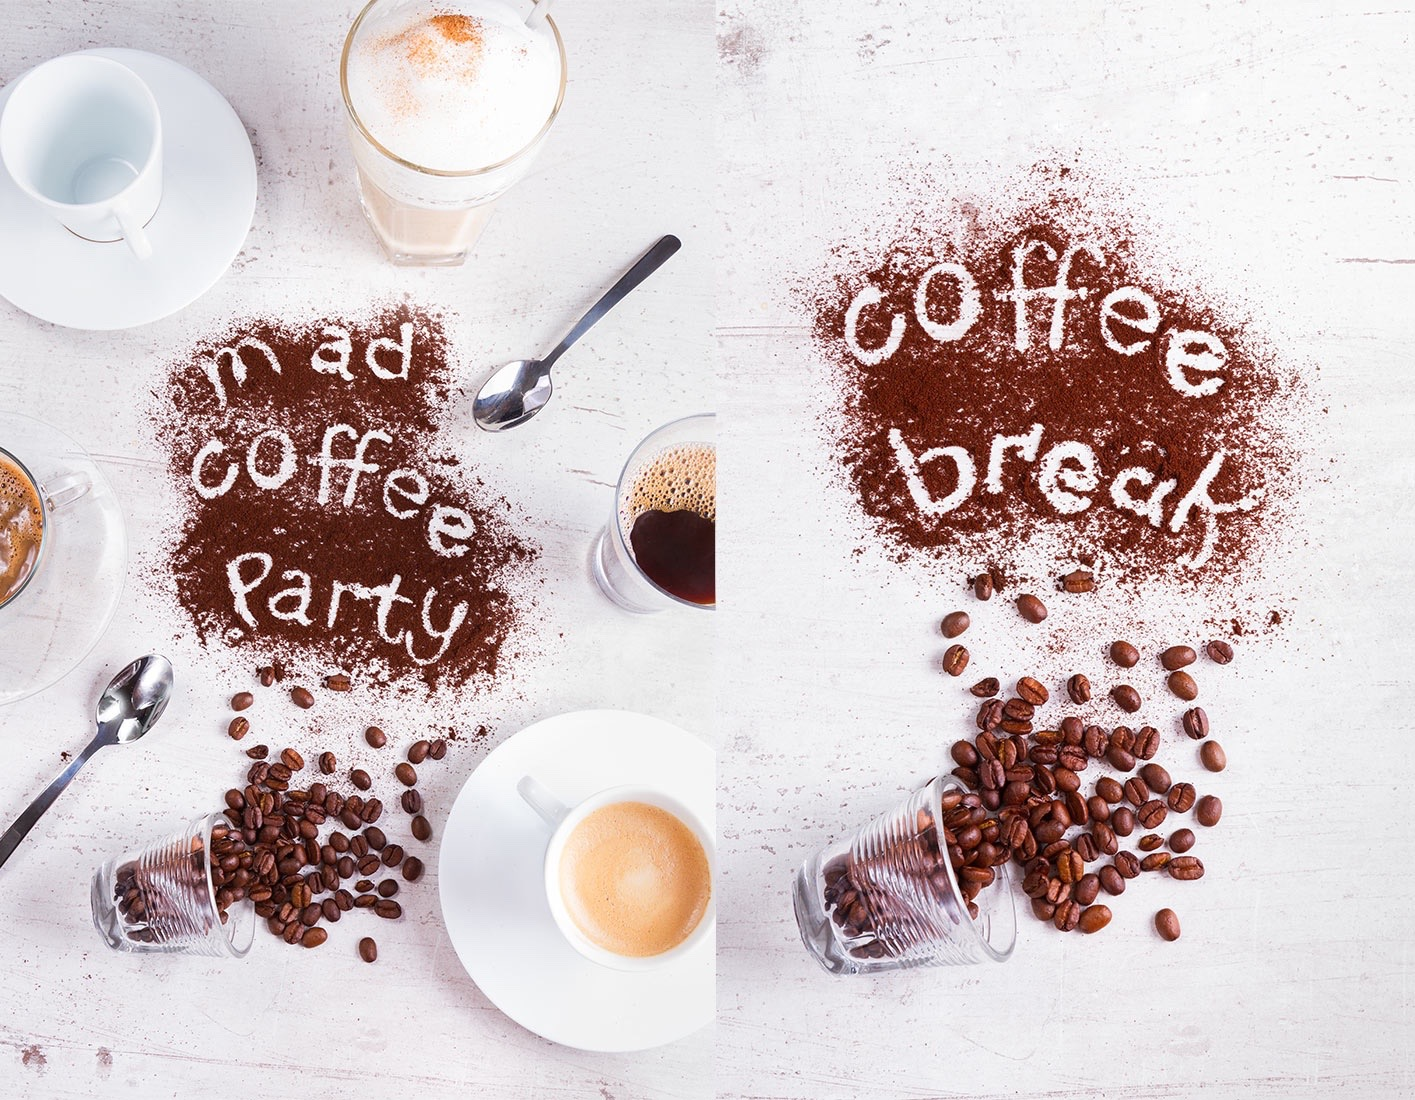 5 Creative Photos That Play With Food Typography